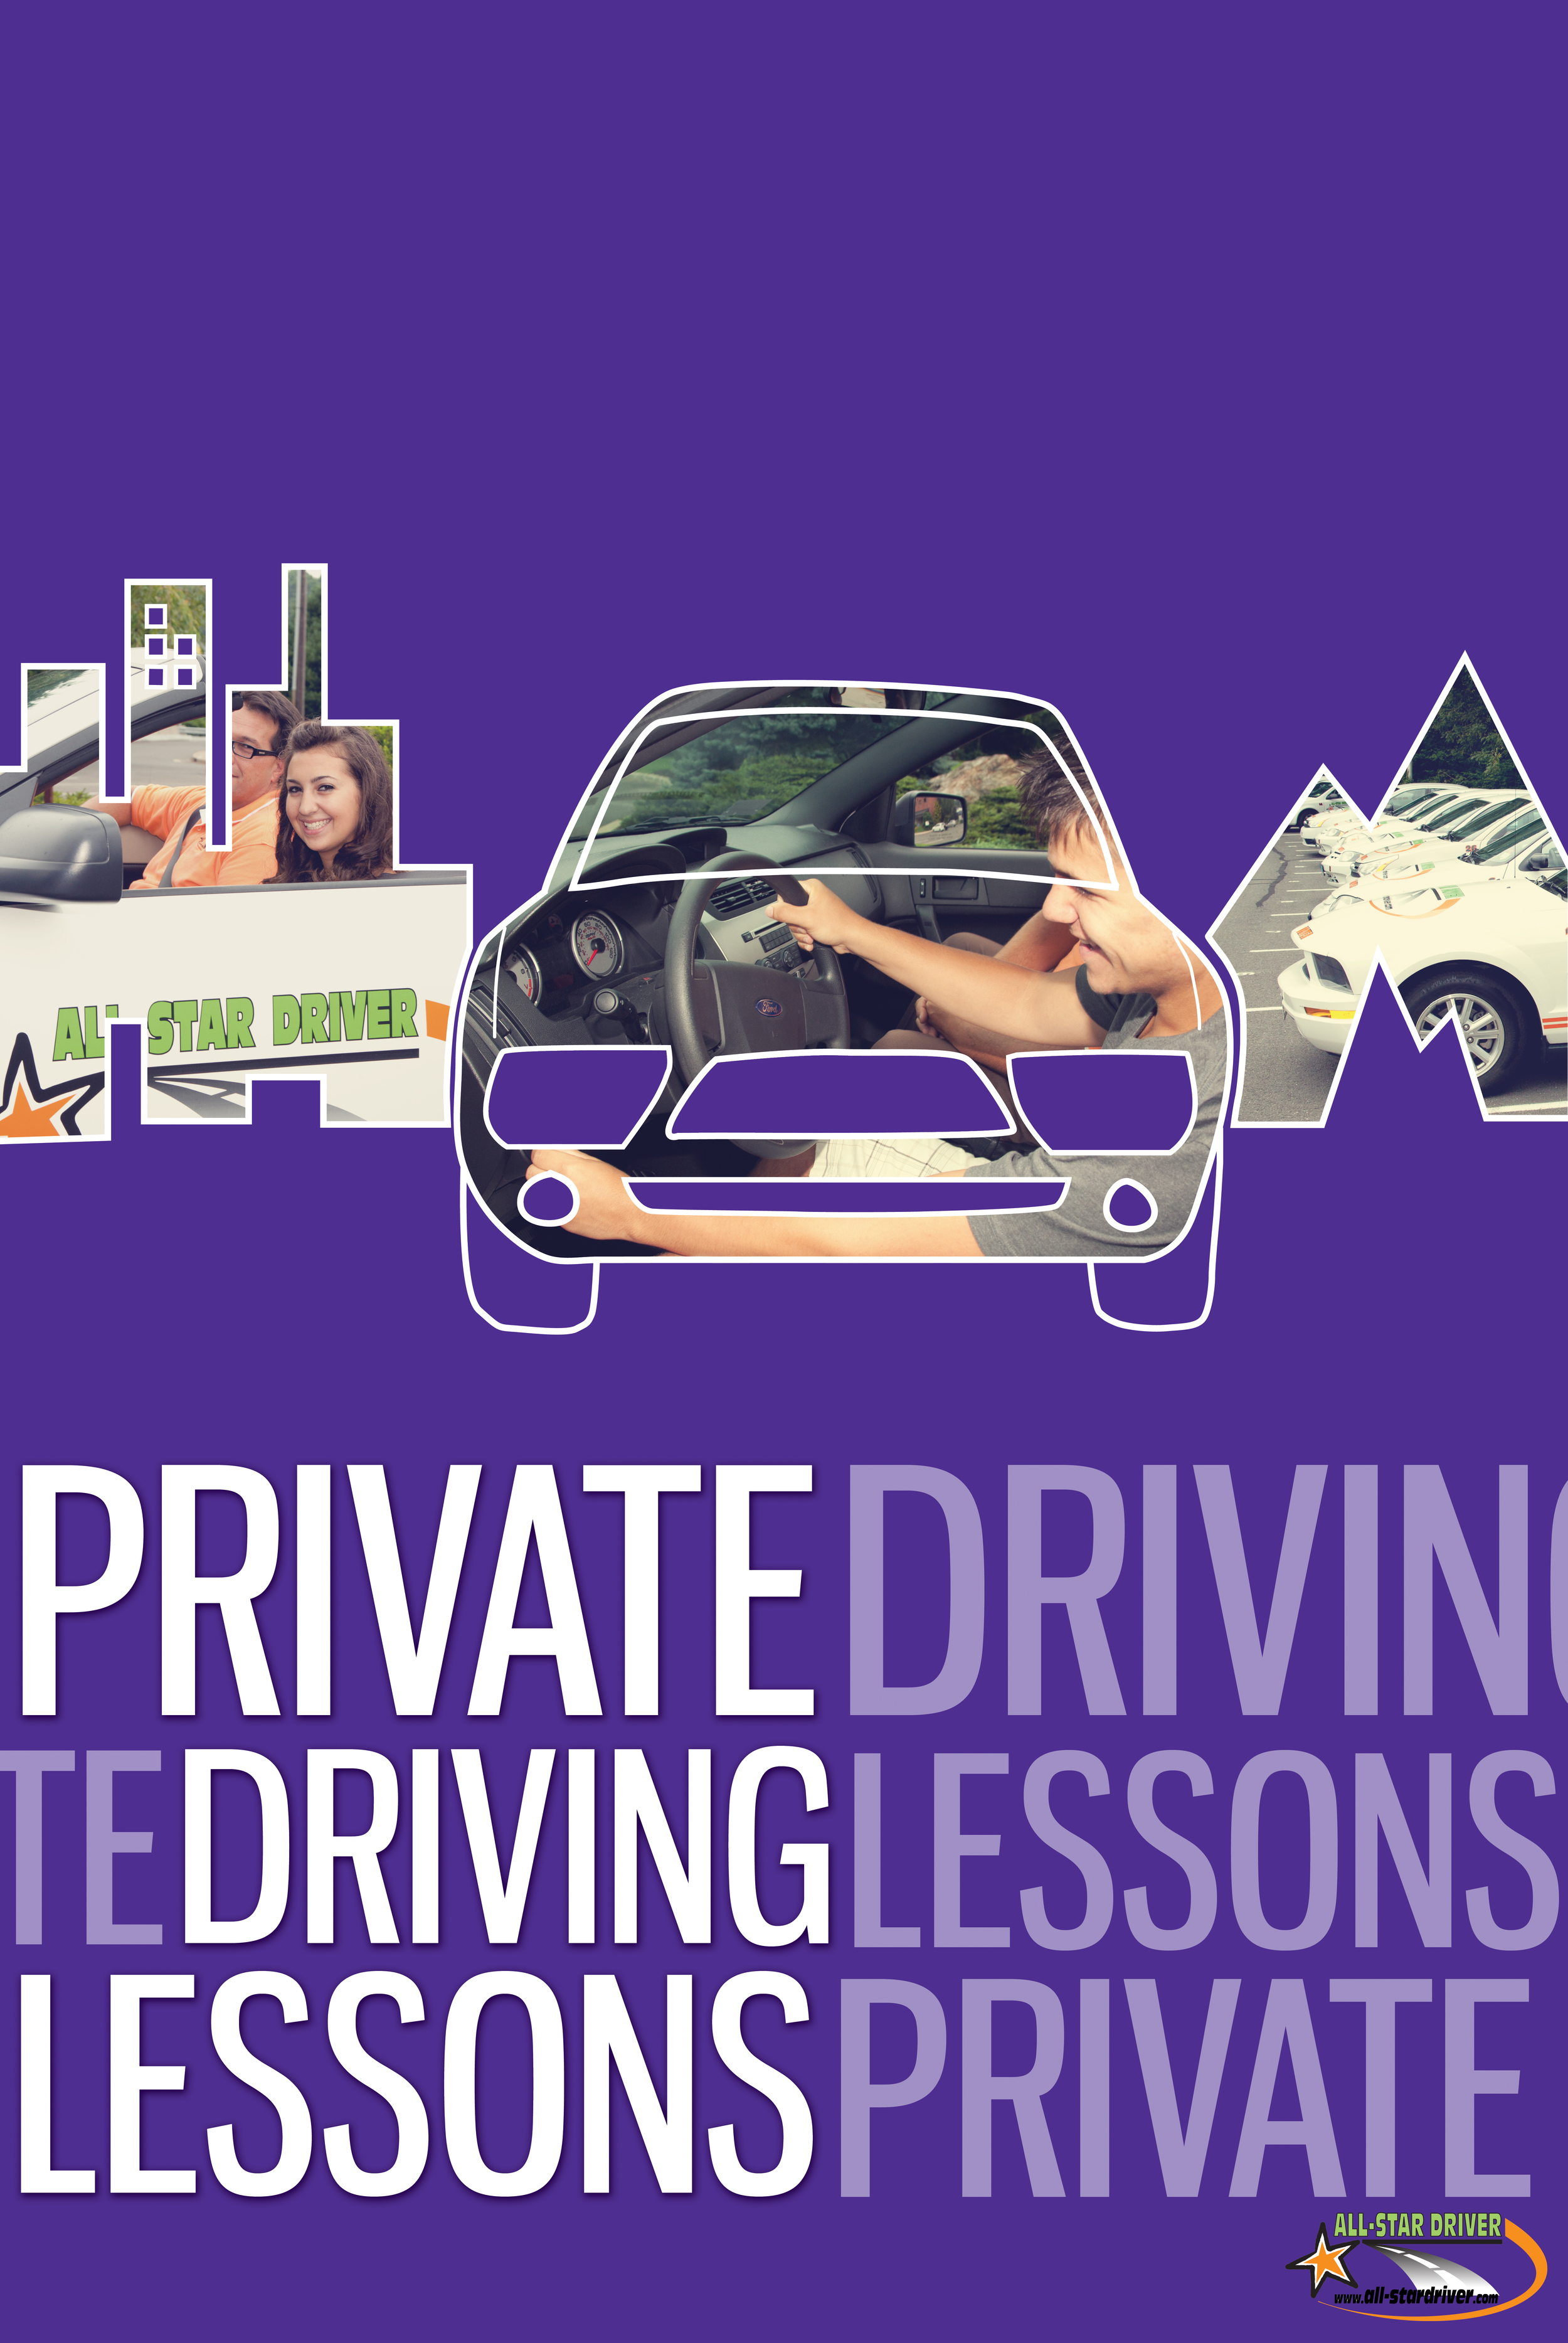 ASD Poster Private Driving Lessons.jpg